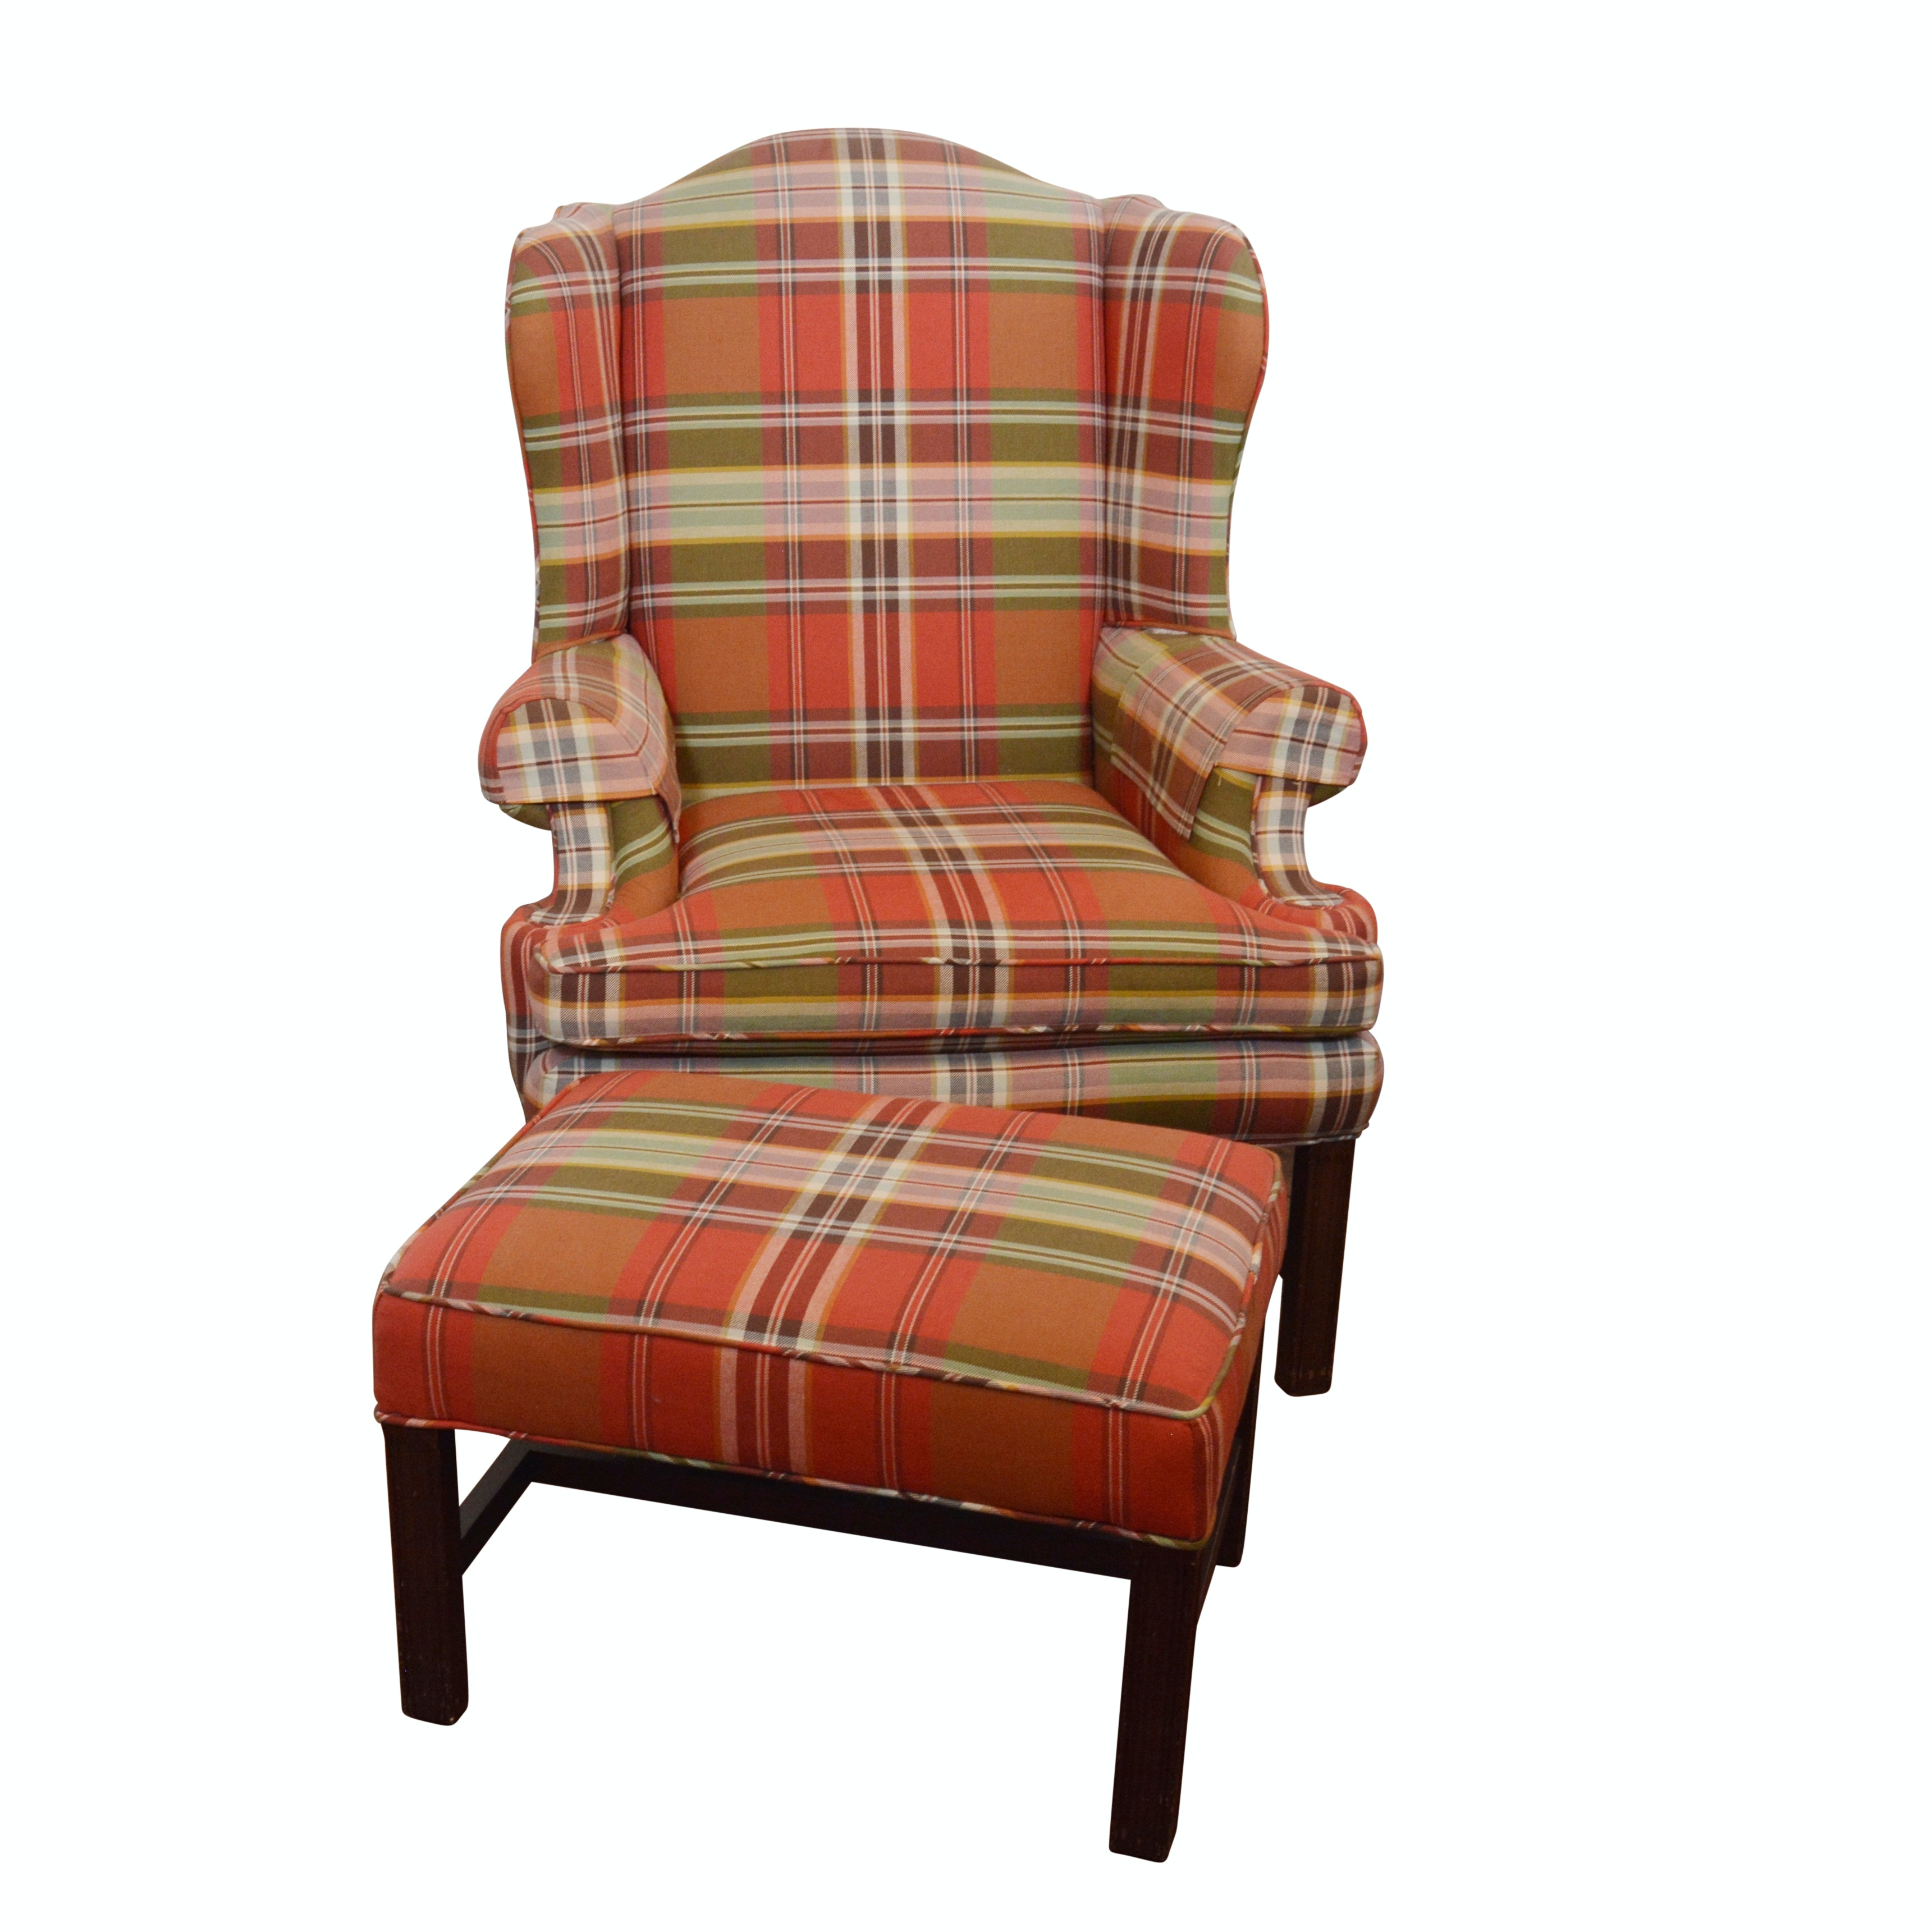 Plaid Upholstered Wingback Chair and Ottoman